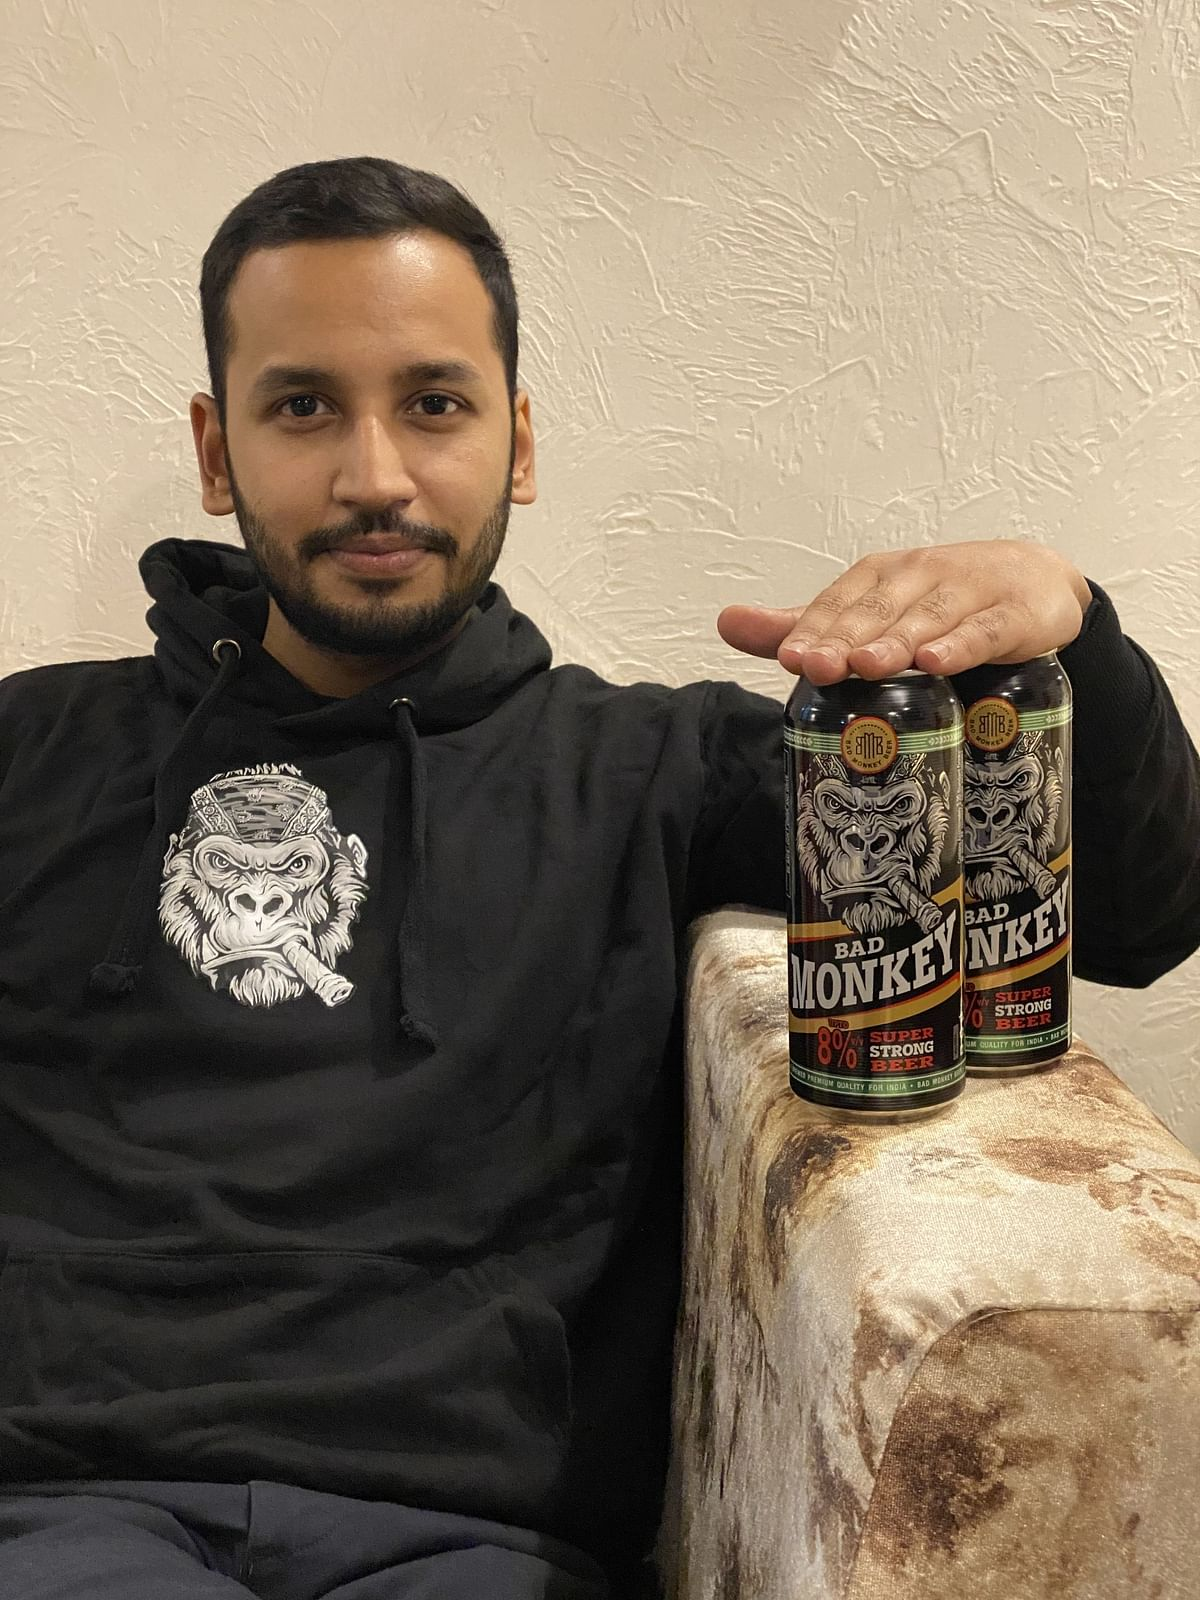 Rohan Khare, founder of Bad Monkey beer